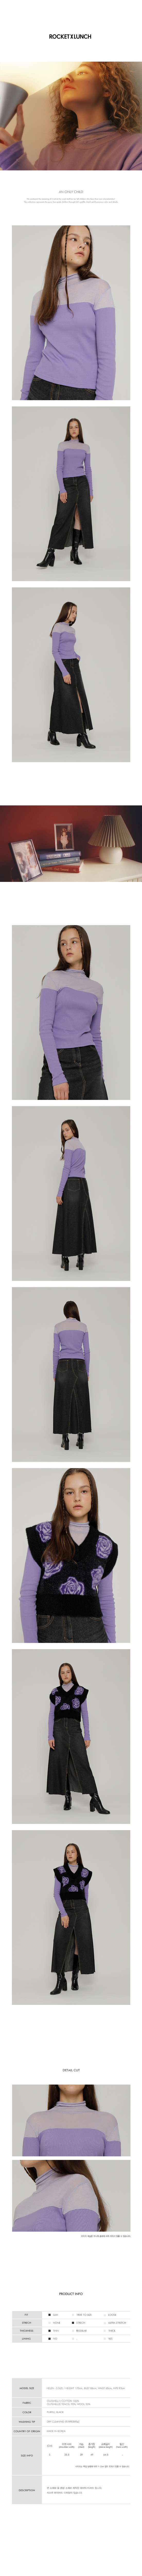 로켓런치(ROCKET X LUNCH) R SEE-THROUGH LAYERED POLA T-SHIRT_PURPLE